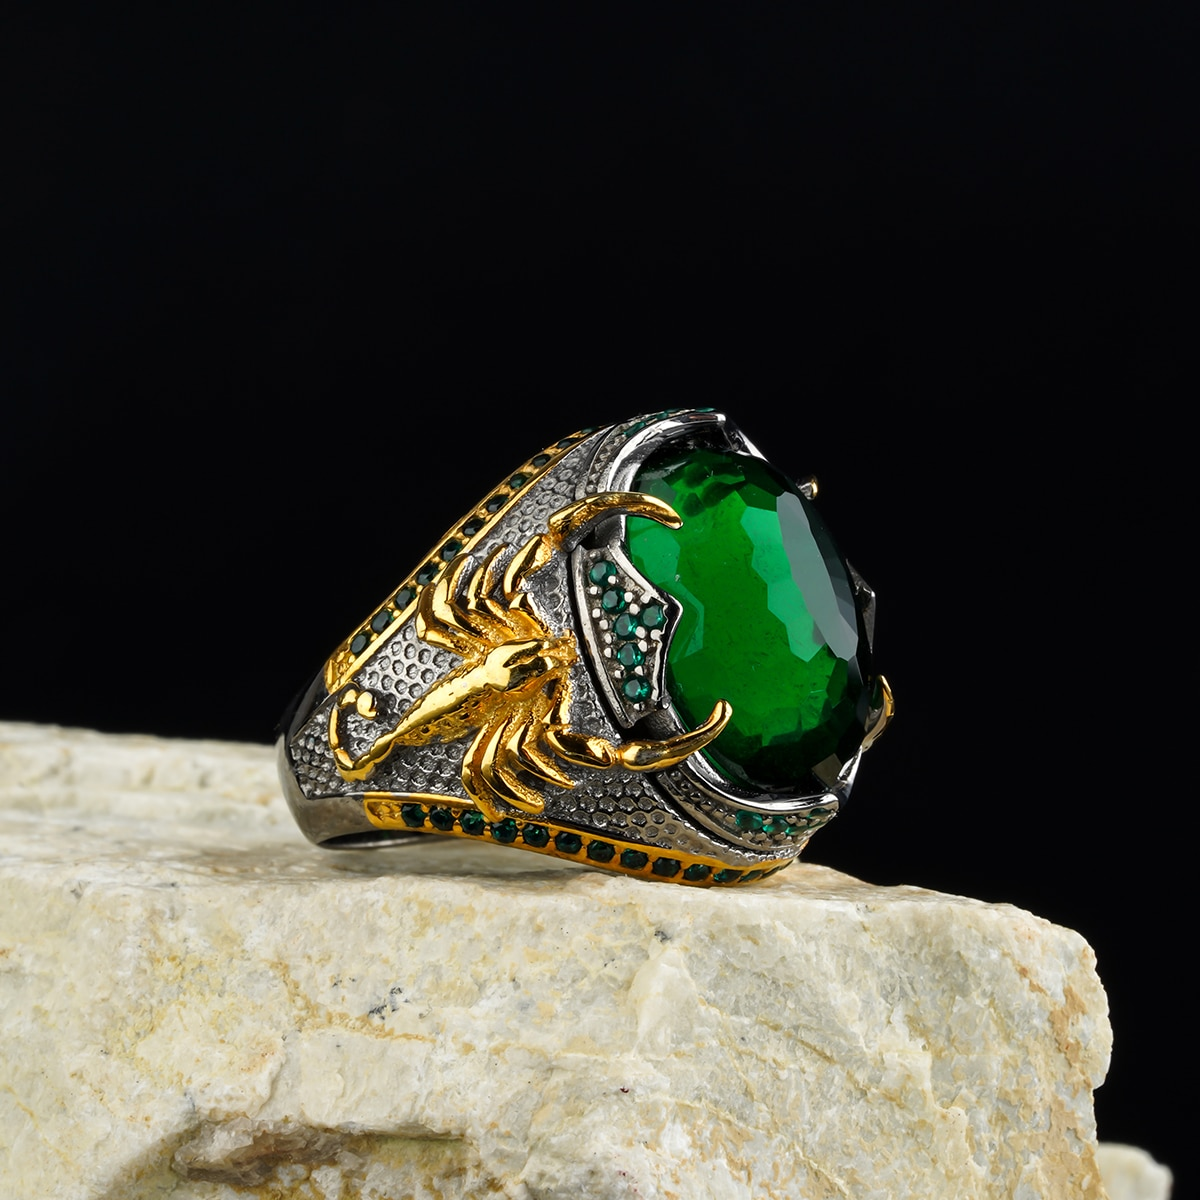 custom Jewelry  High-quality 925 Sterling Silver Zircon stone ring   green color  in a luxurious way for men with gift